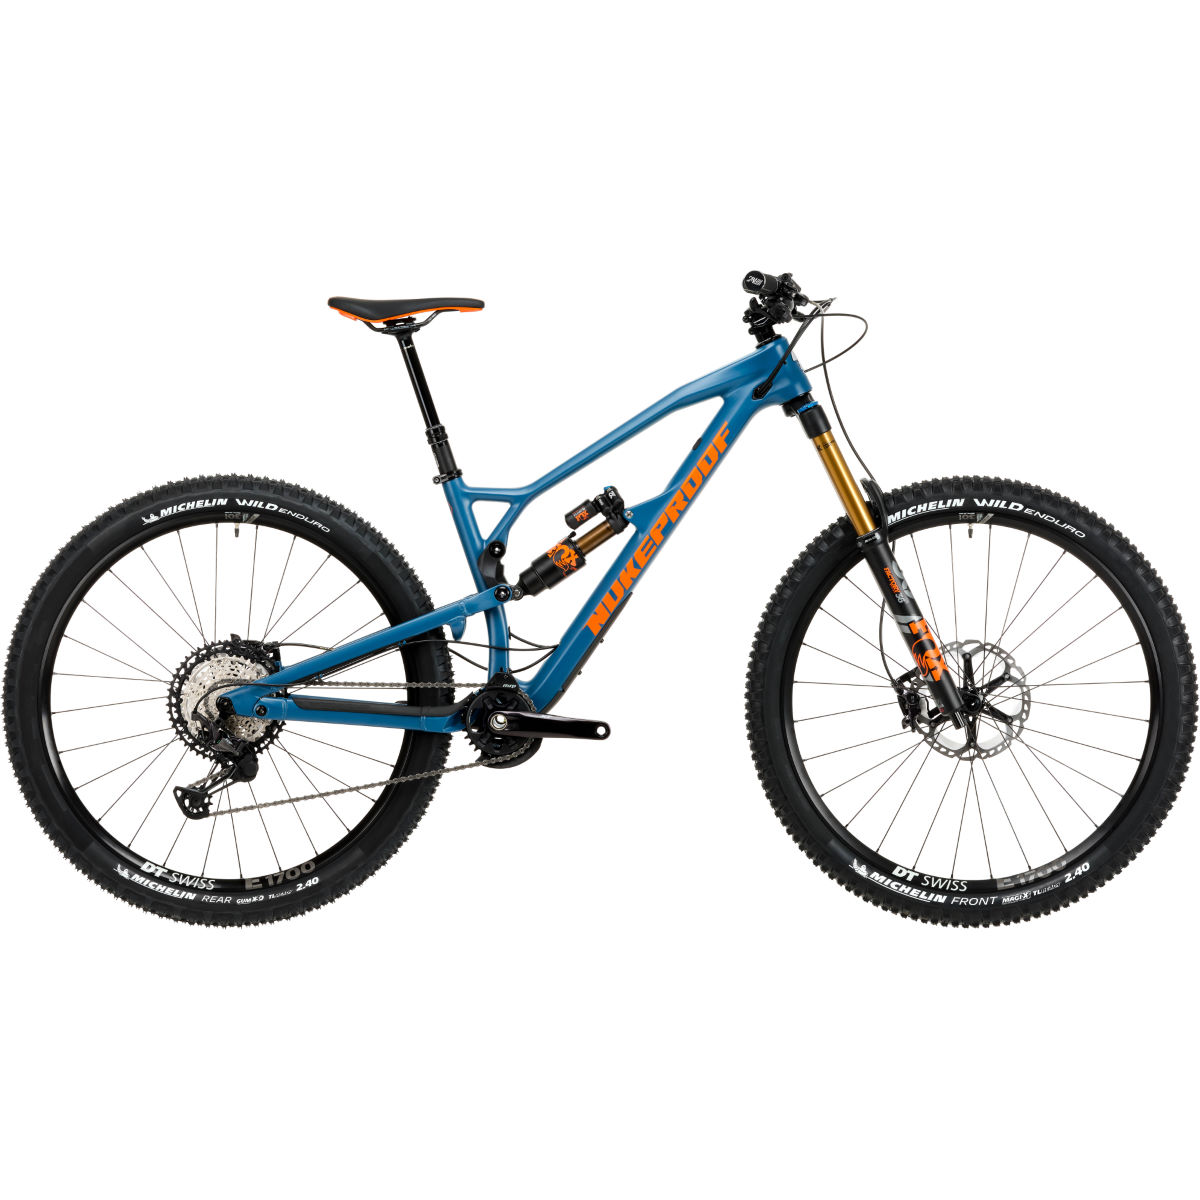 Nukeproof Nukeproof Mega 290 Factory Carbon Bike (XT - 2020)   Full Suspension Mountain Bikes